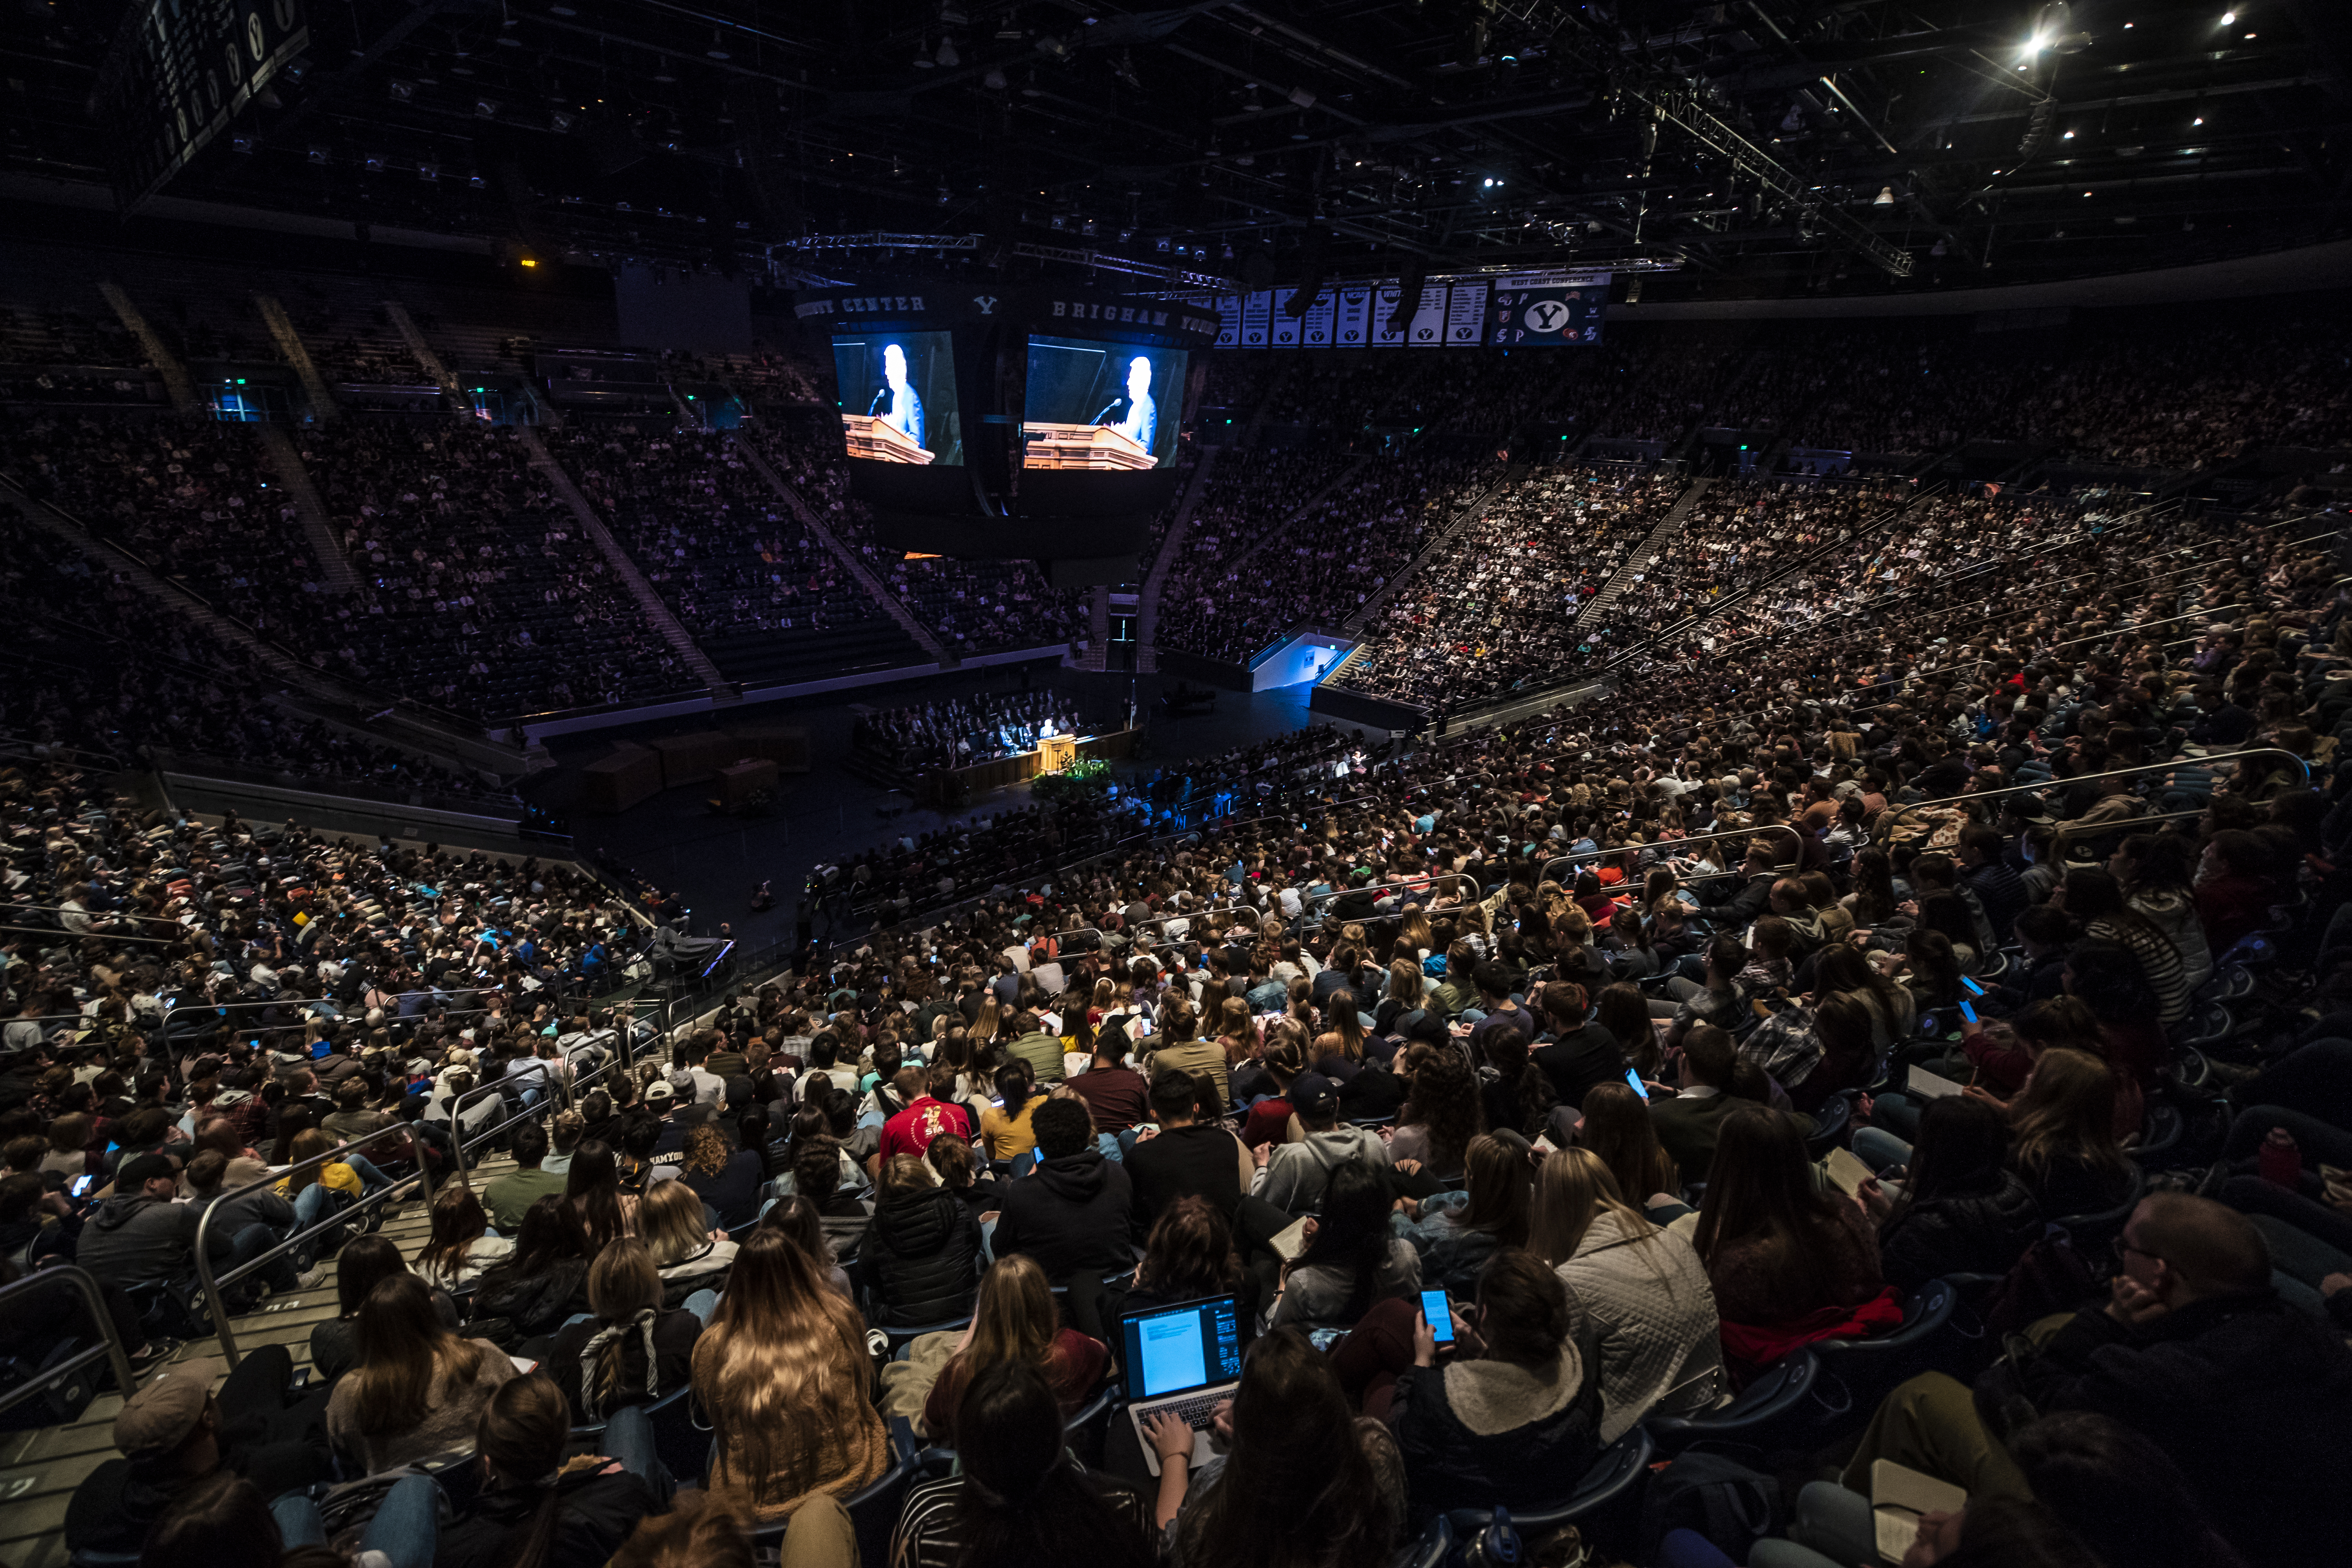 Elder Dieter F. Uchtdorf of the Quorum of the Twelve Apostles speaks during a devotional on the BYU campus in Provo, Utah on Tuesday, Jan. 15, 2019.